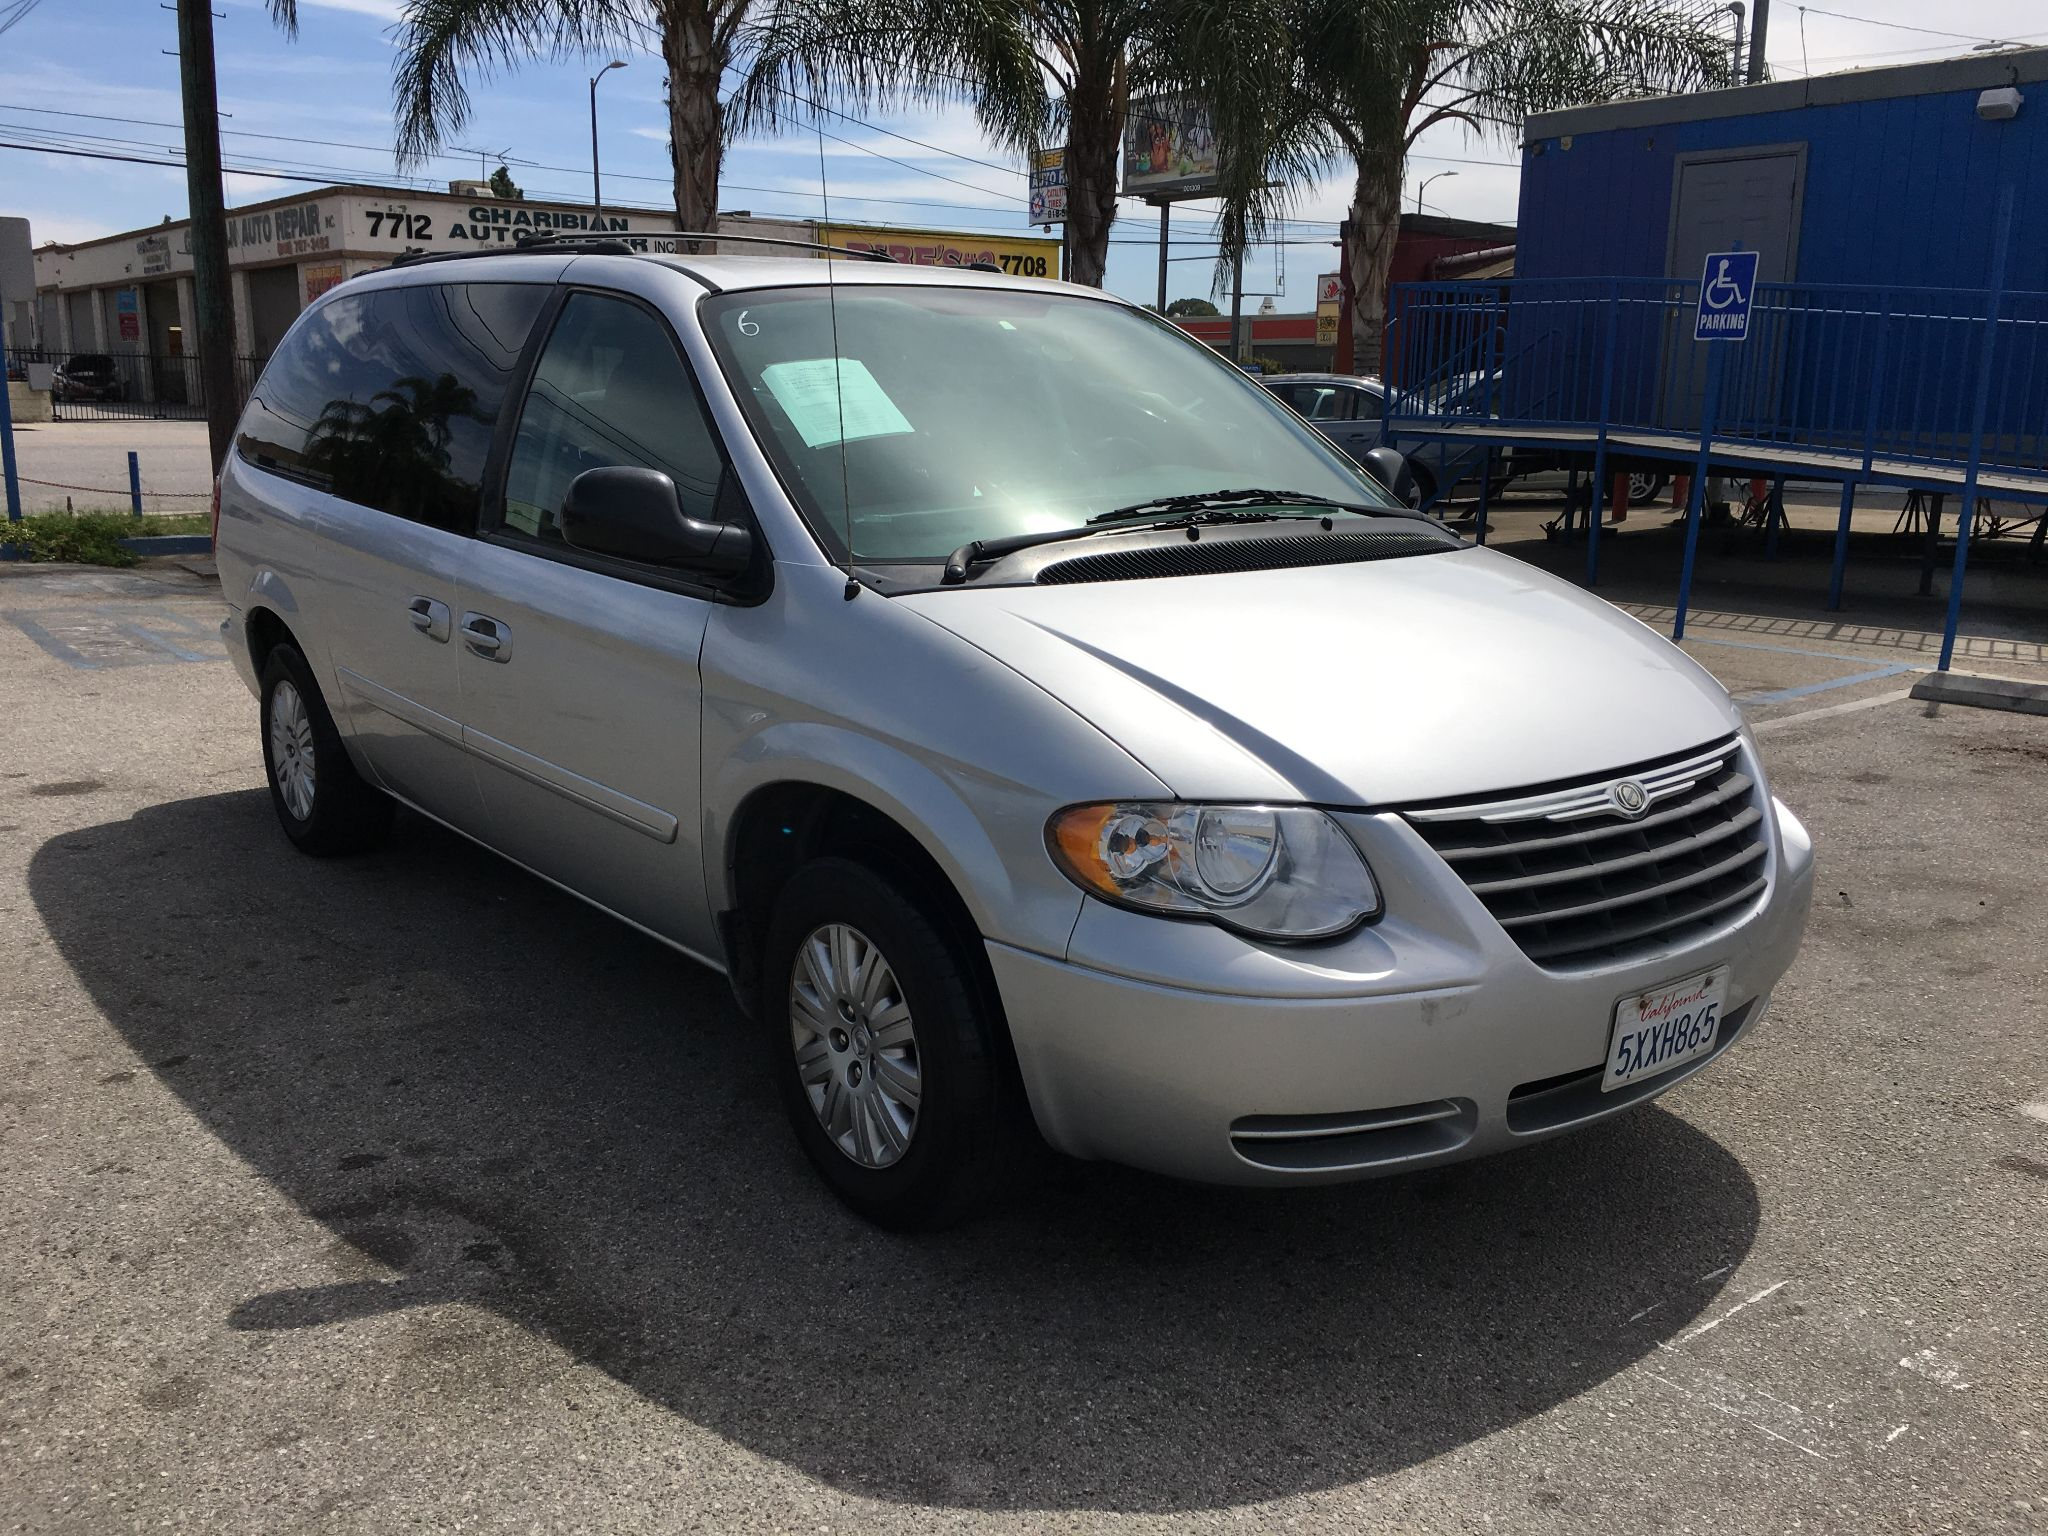 2006 Chrysler Town & Country LX